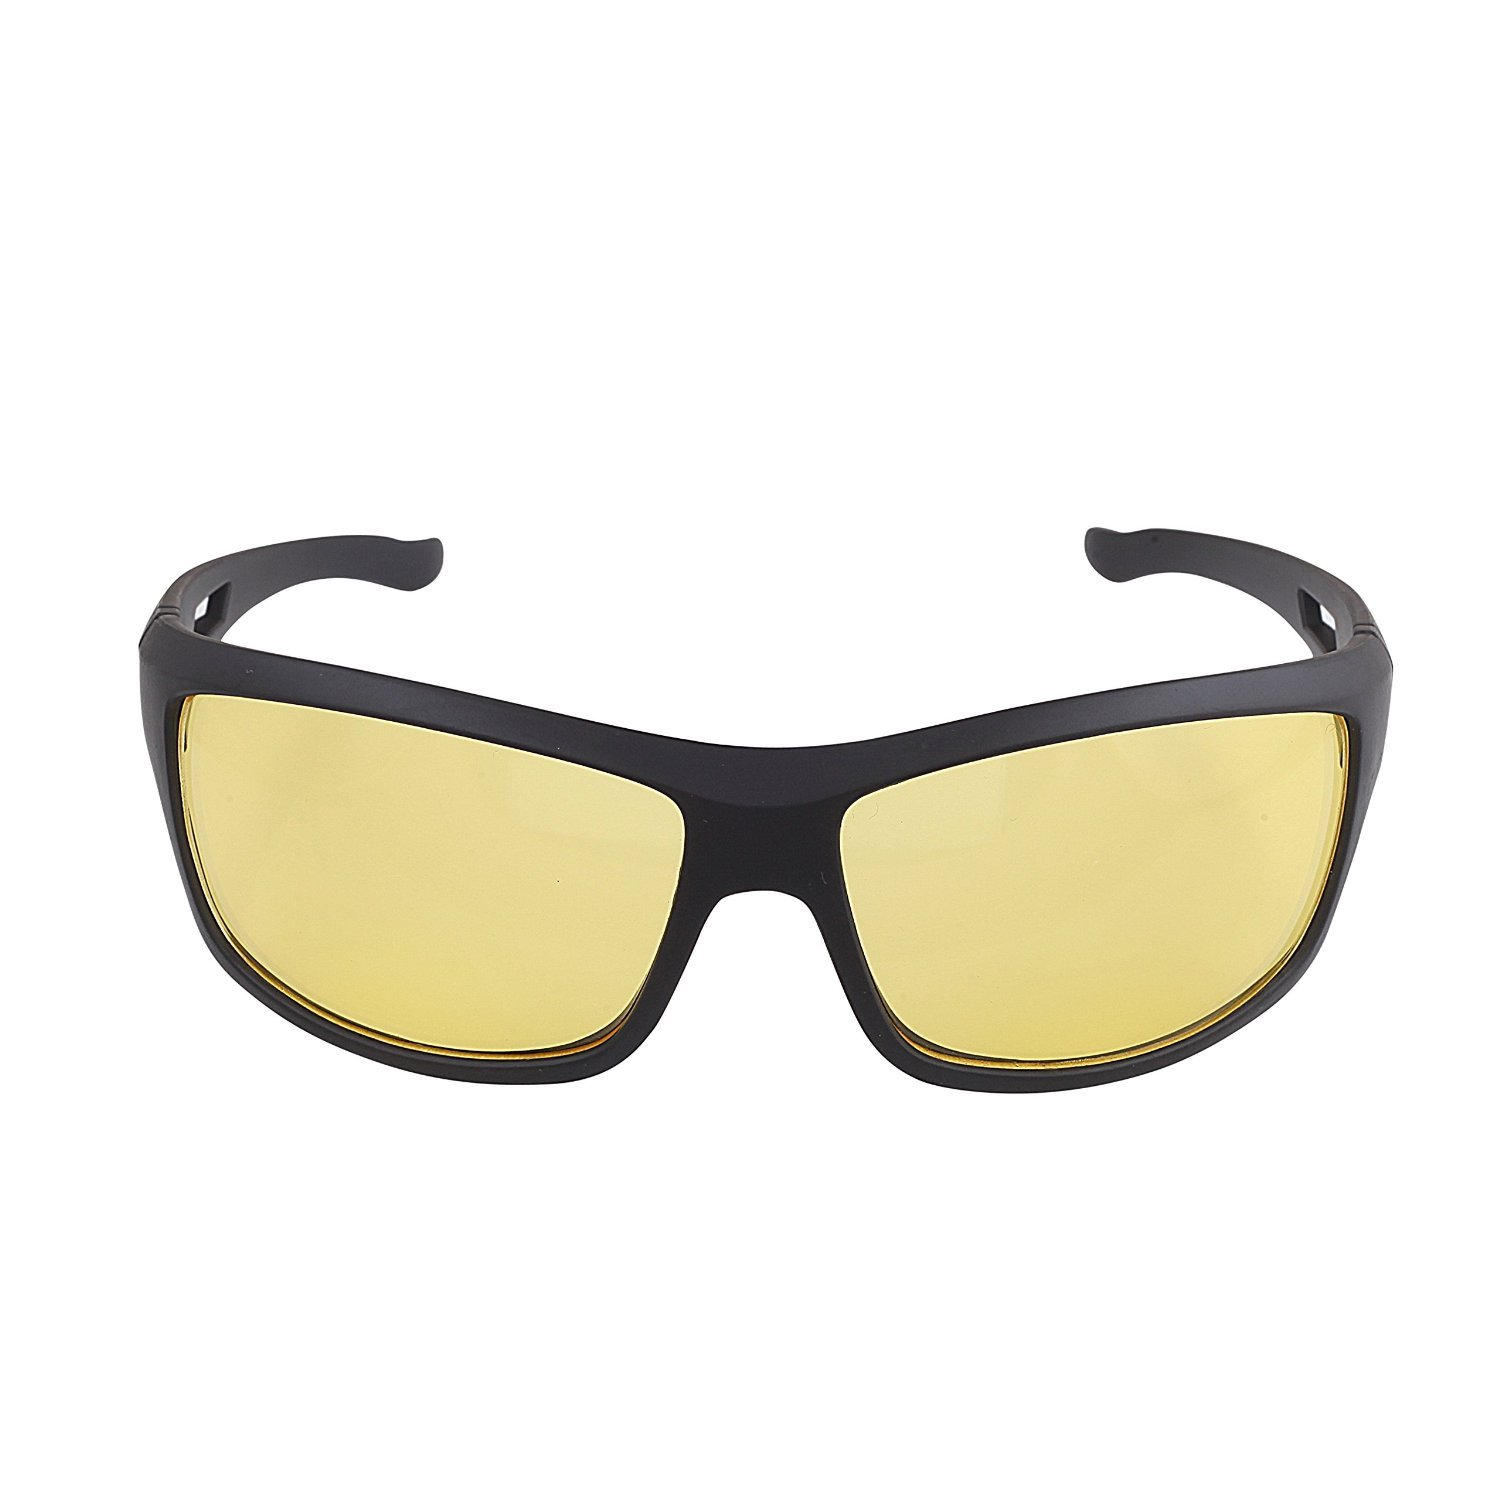 7027c3da5f7 Discount4product Night Vision Goggles with Yellow Lens and Black Frame   Amazon.in  Clothing   Accessories